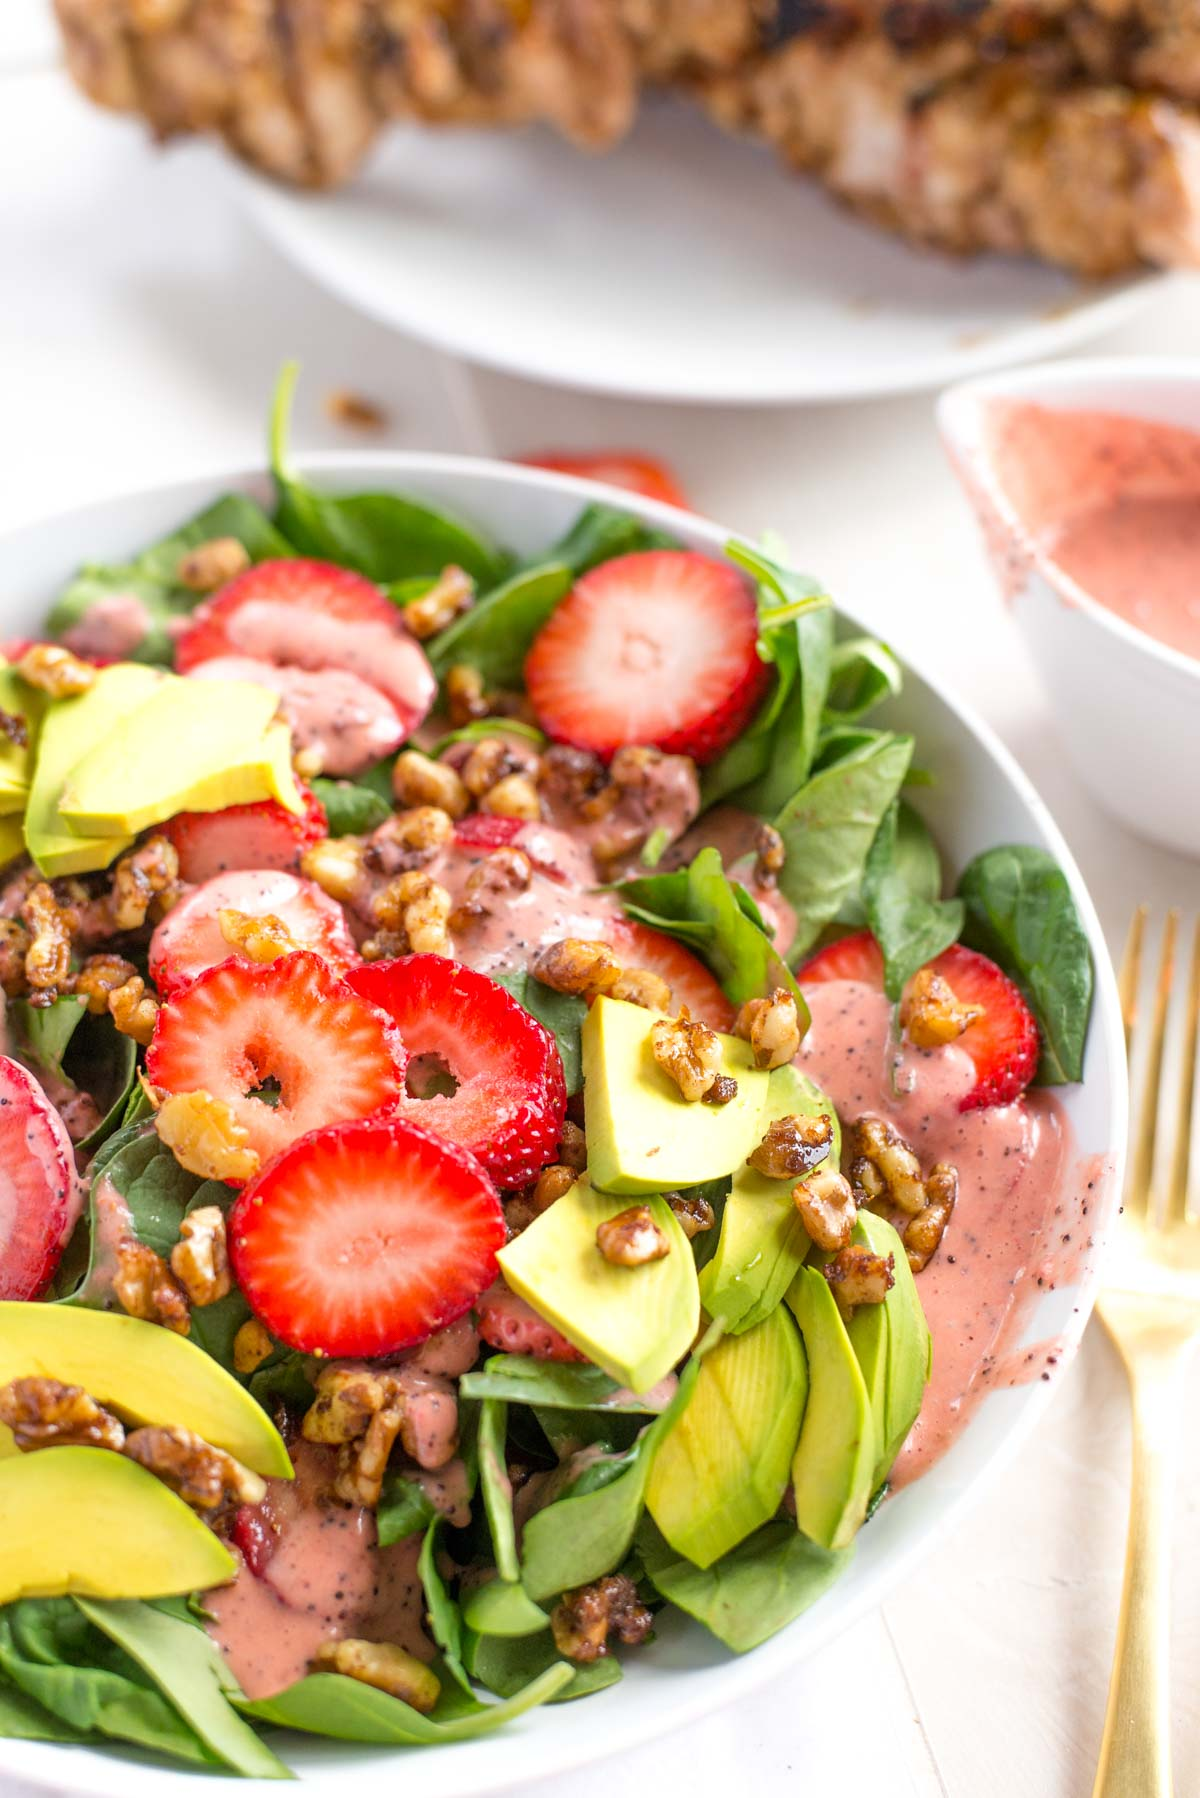 Healthy, fresh and flavorful I'd HIGHLY recommend adding this 10 minute Strawberry Spinach Salad to your meal plan this week.